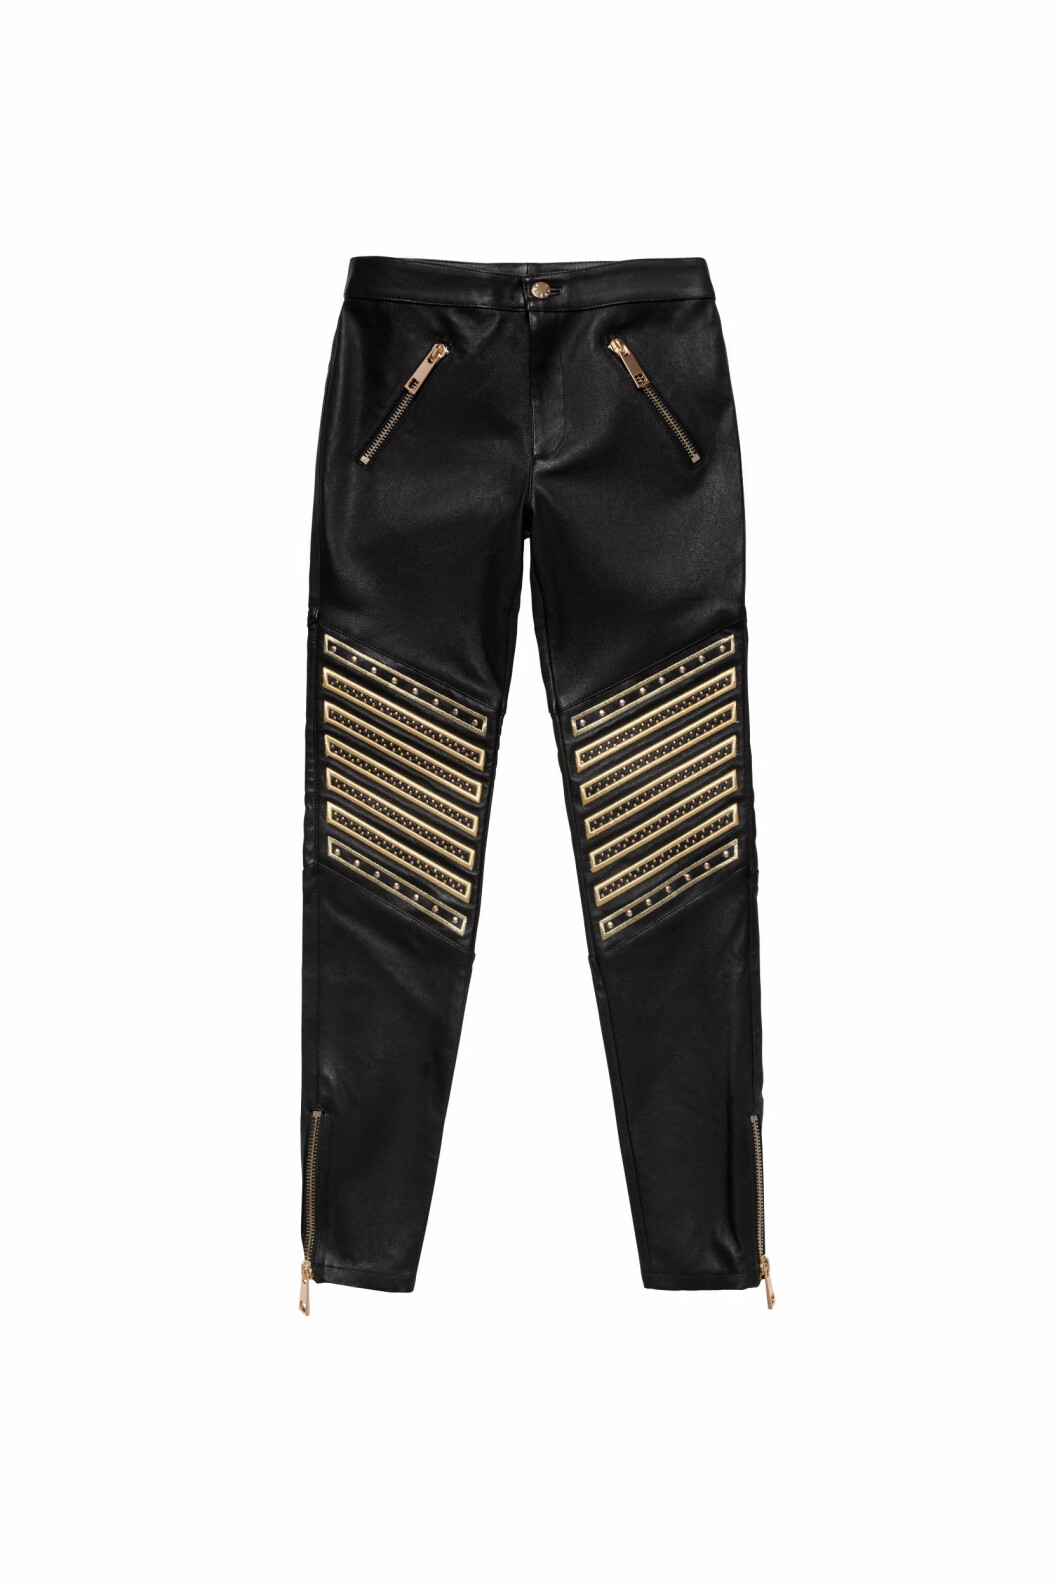 Skin Lux Trousers